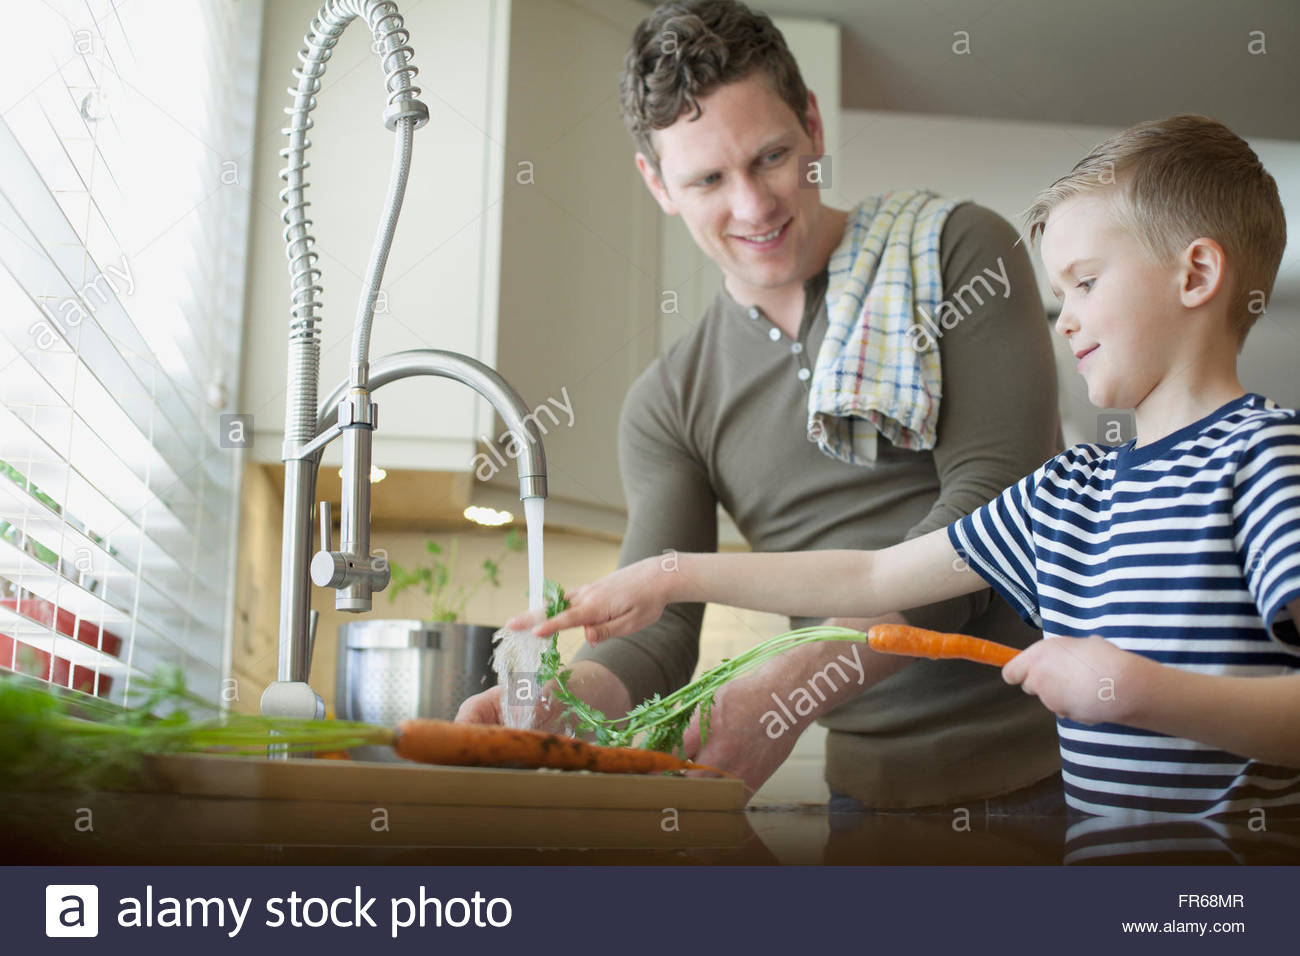 dad and young son washing carrots in kitchen - Stock Image